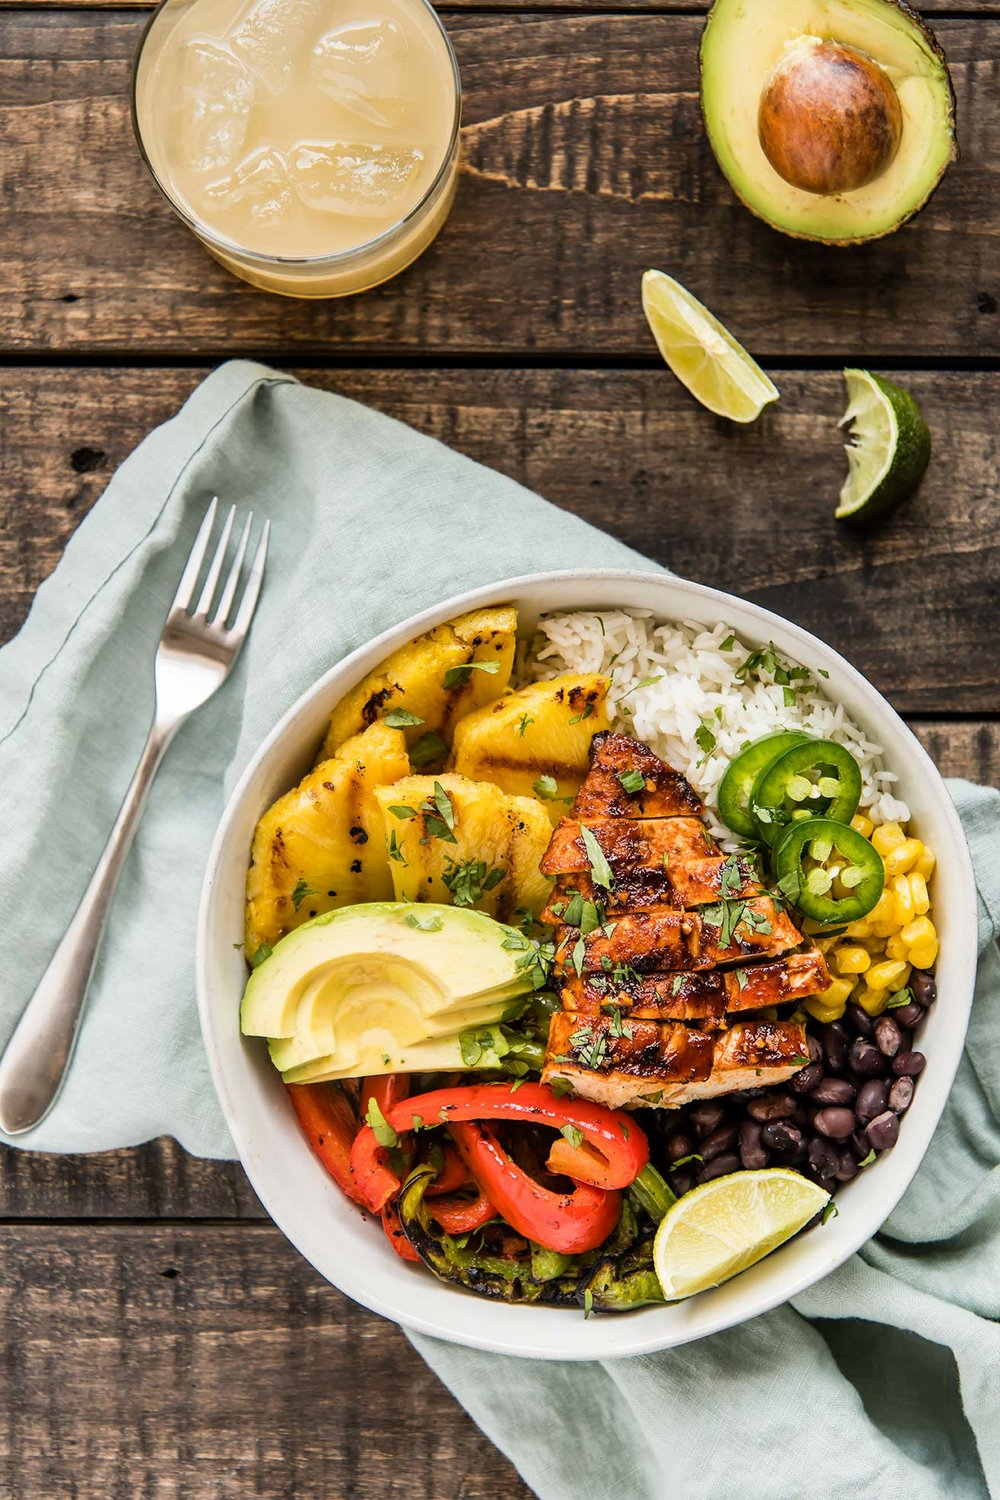 Pineapple Chipotle Chicken Fajita Bowls